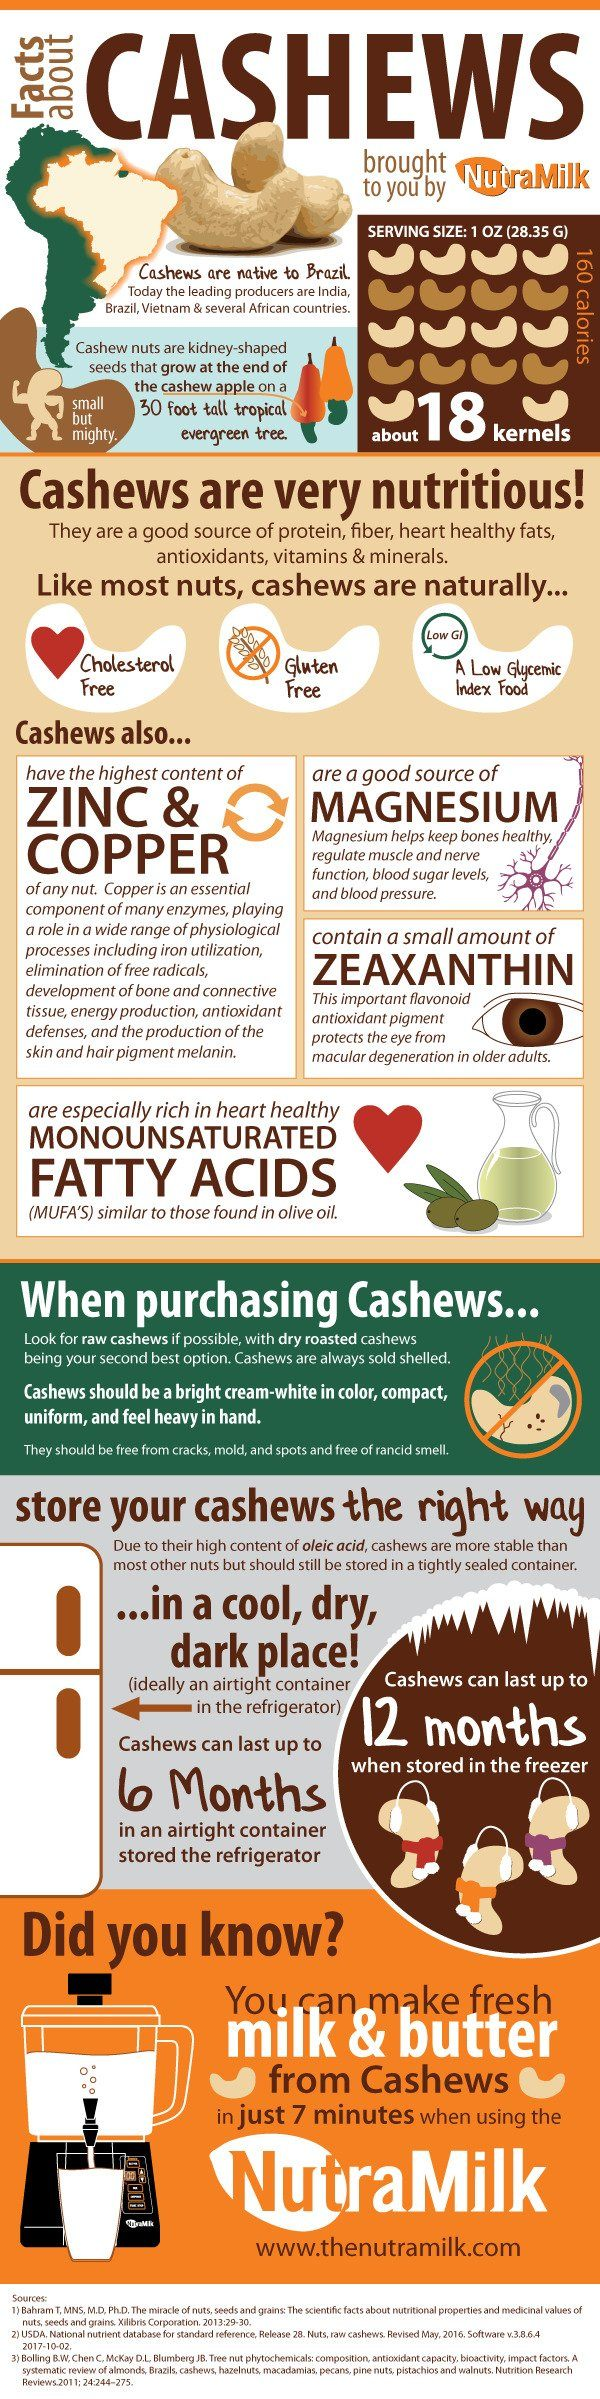 Facts About Cashews